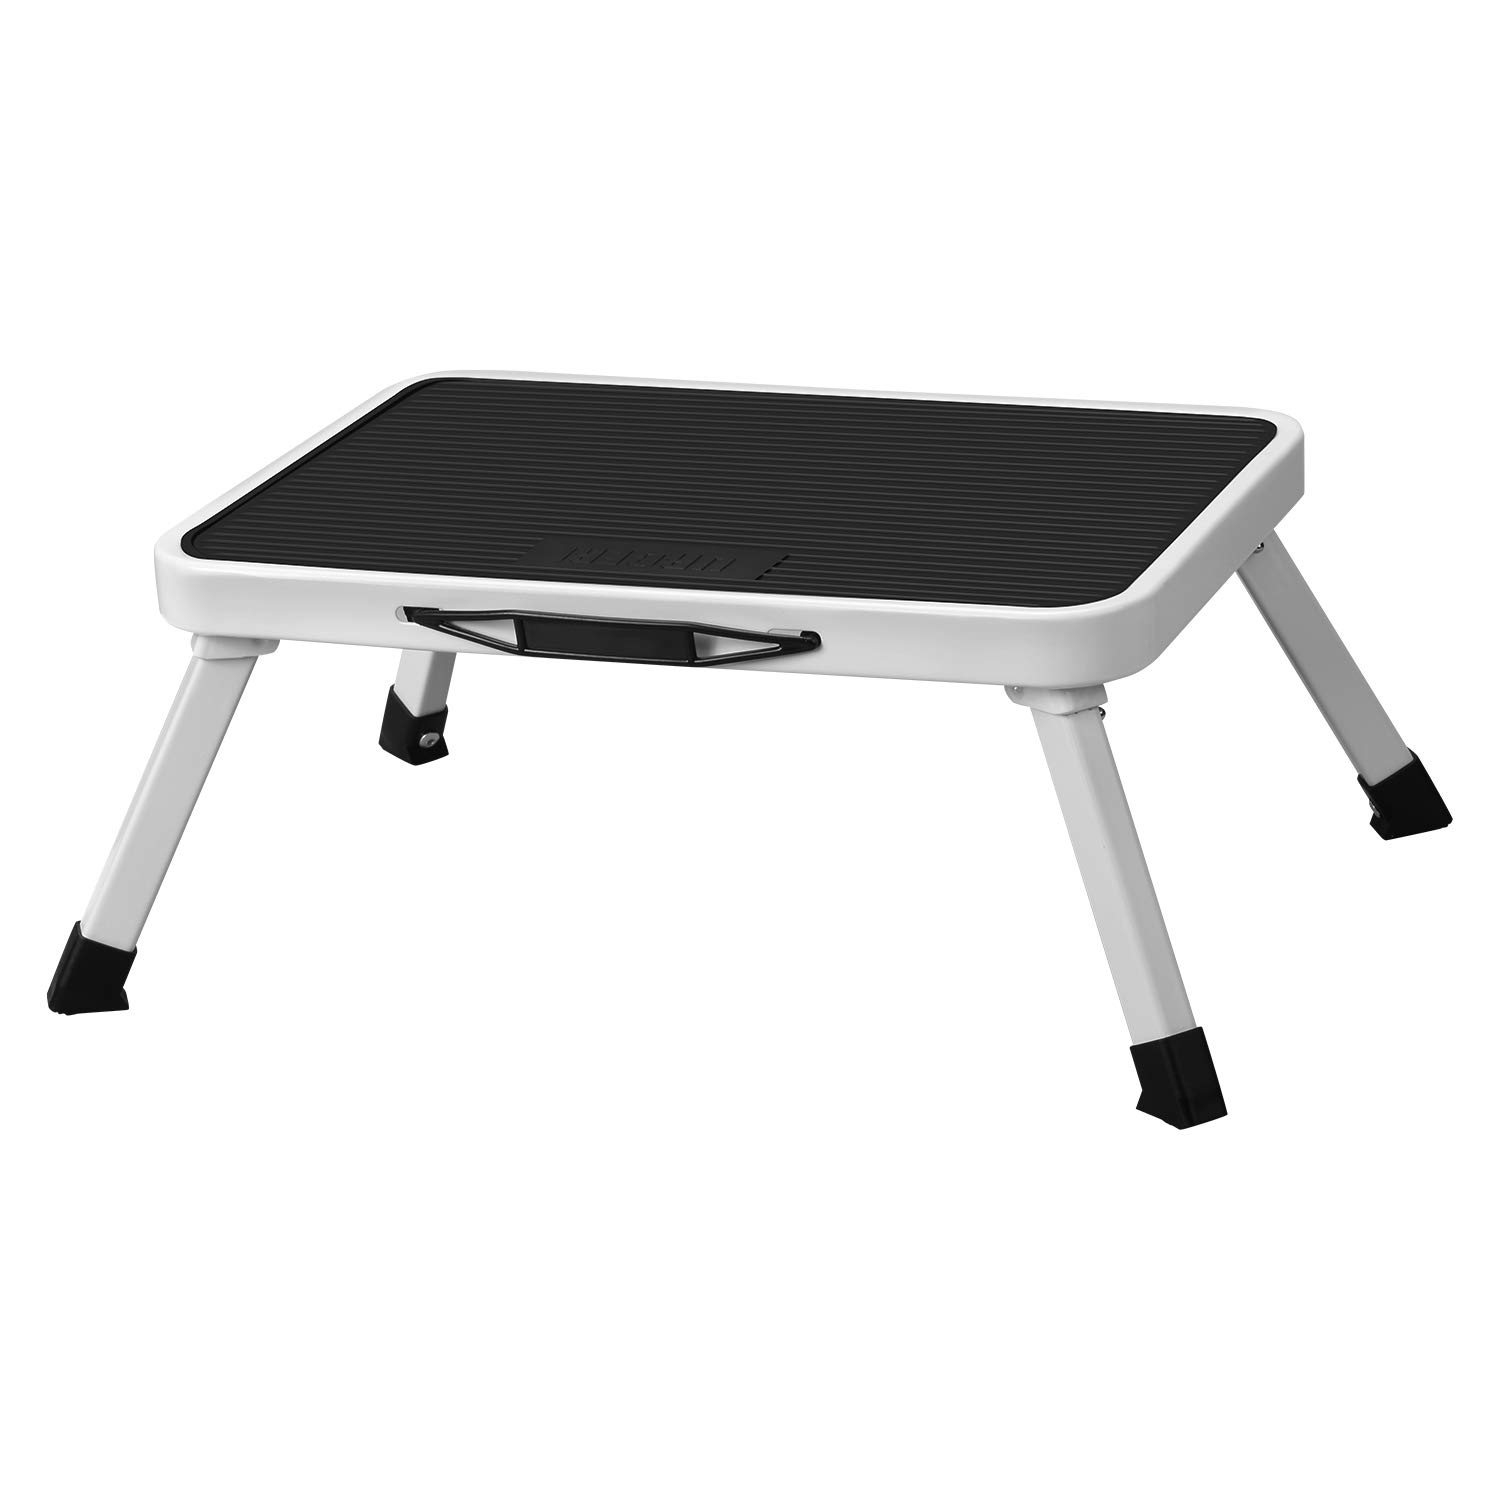 URCERI Folding Steel Step Stool with Non-Skid Plastic Platform Portable Lightweight One Step Ladder with Built-in Handle and Max Load 330 lbs. for Adults Seniors Kids to use at Home Bathroom Kitchen by URCERI (Image #10)